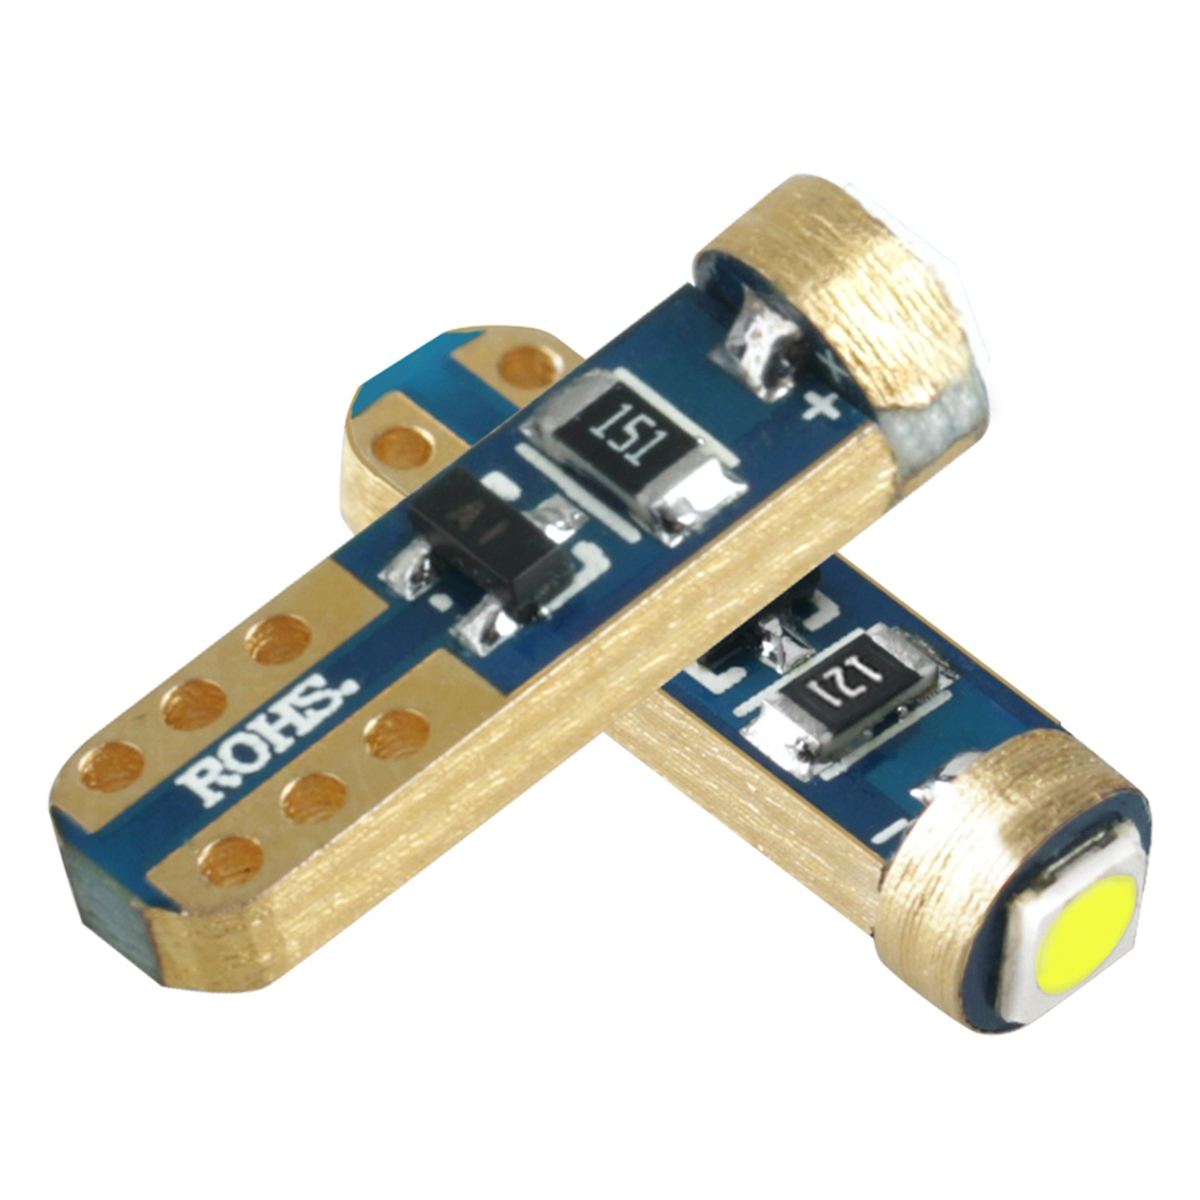 DHBH-4Pcs Car Interior <font><b>T5</b></font> <font><b>Led</b></font> 1 Smd DC 12V <font><b>24V</b></font> Bulbs Light Ceramic Dashboard Gauge Instrument Ceramic Car Auto Side Wedge Lamp image